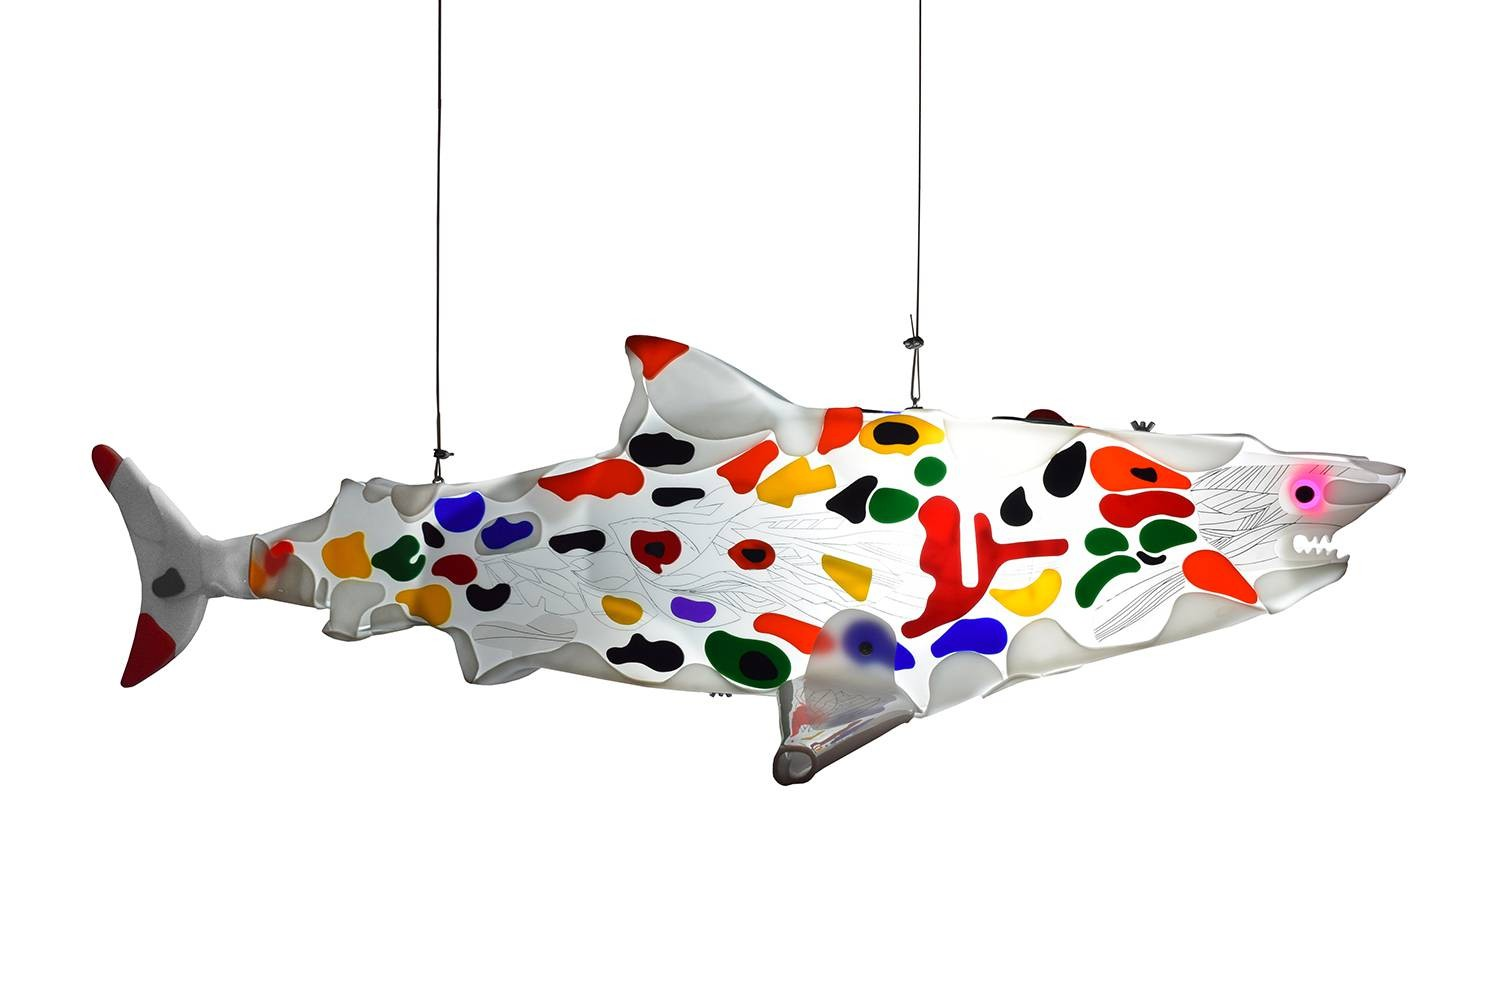 Imaginative wanderer 2 is a shark light sculpture